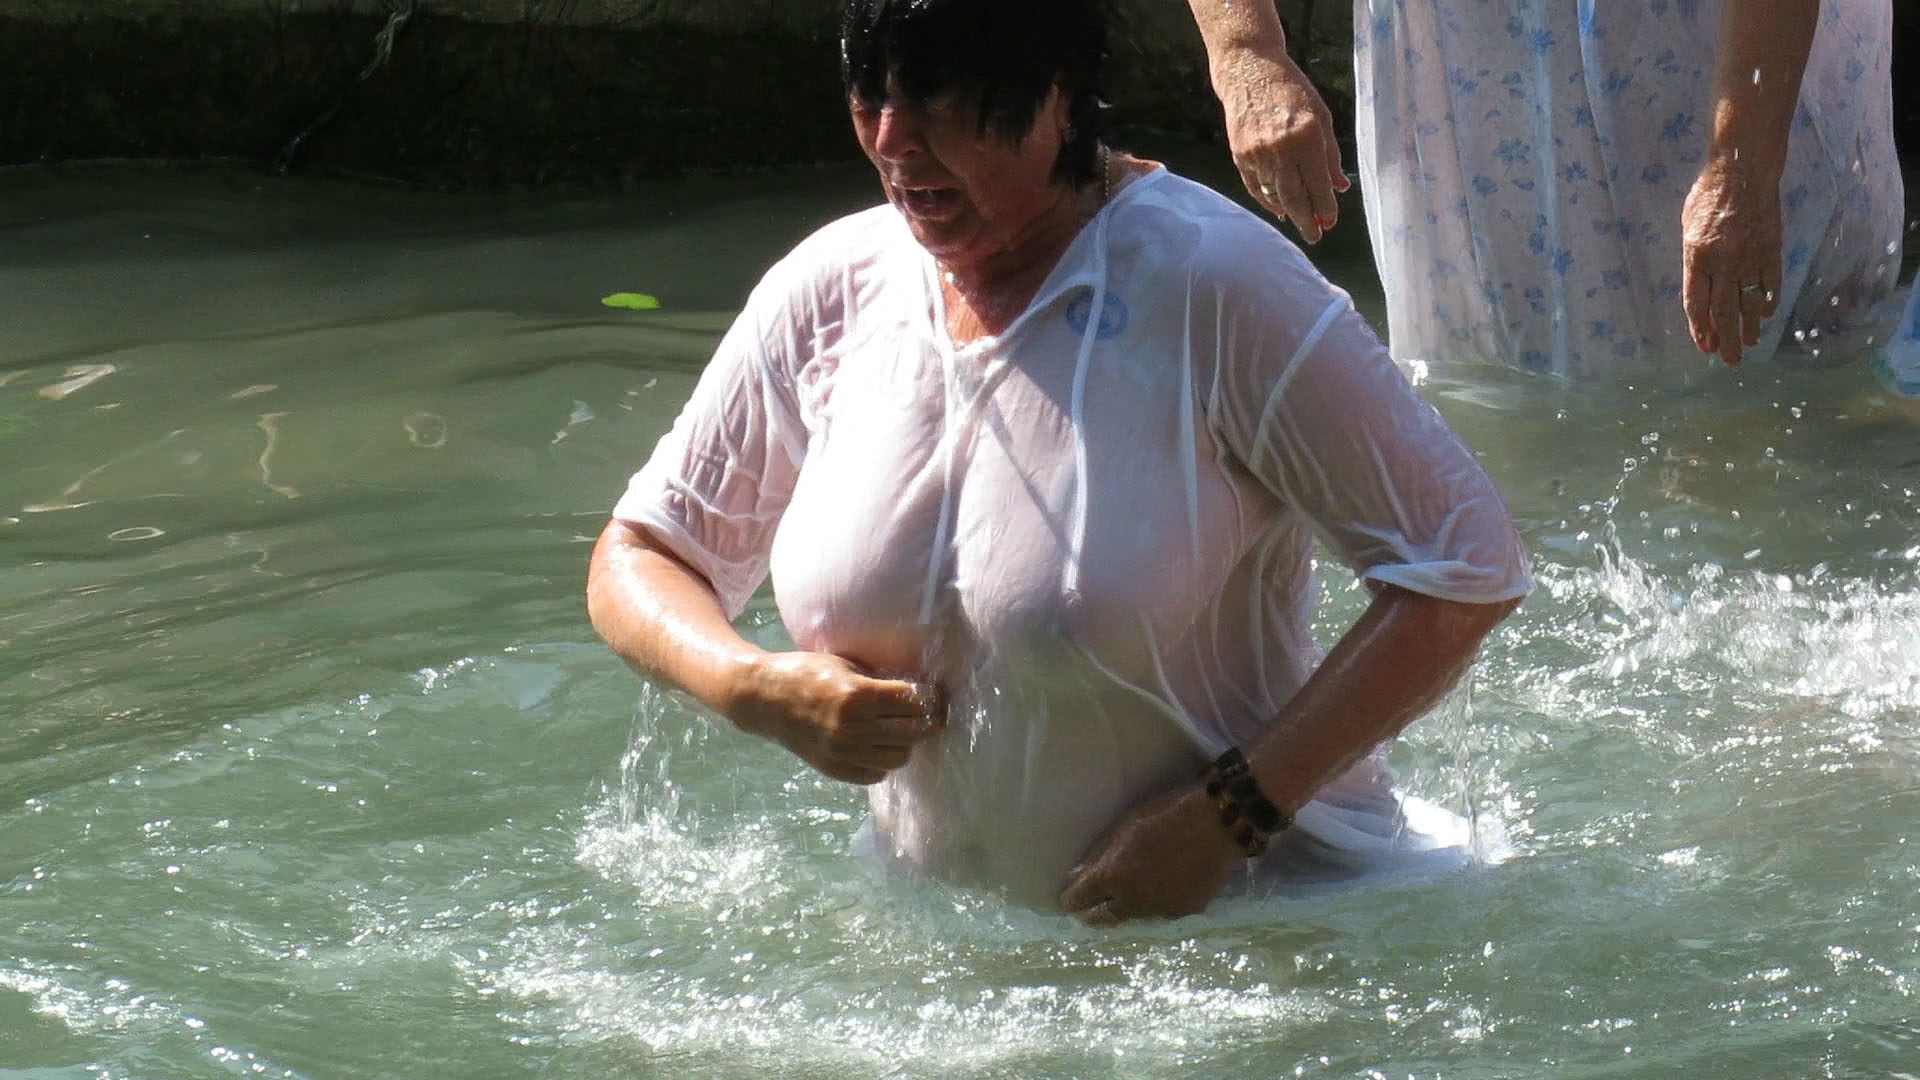 She plunge her breast into water